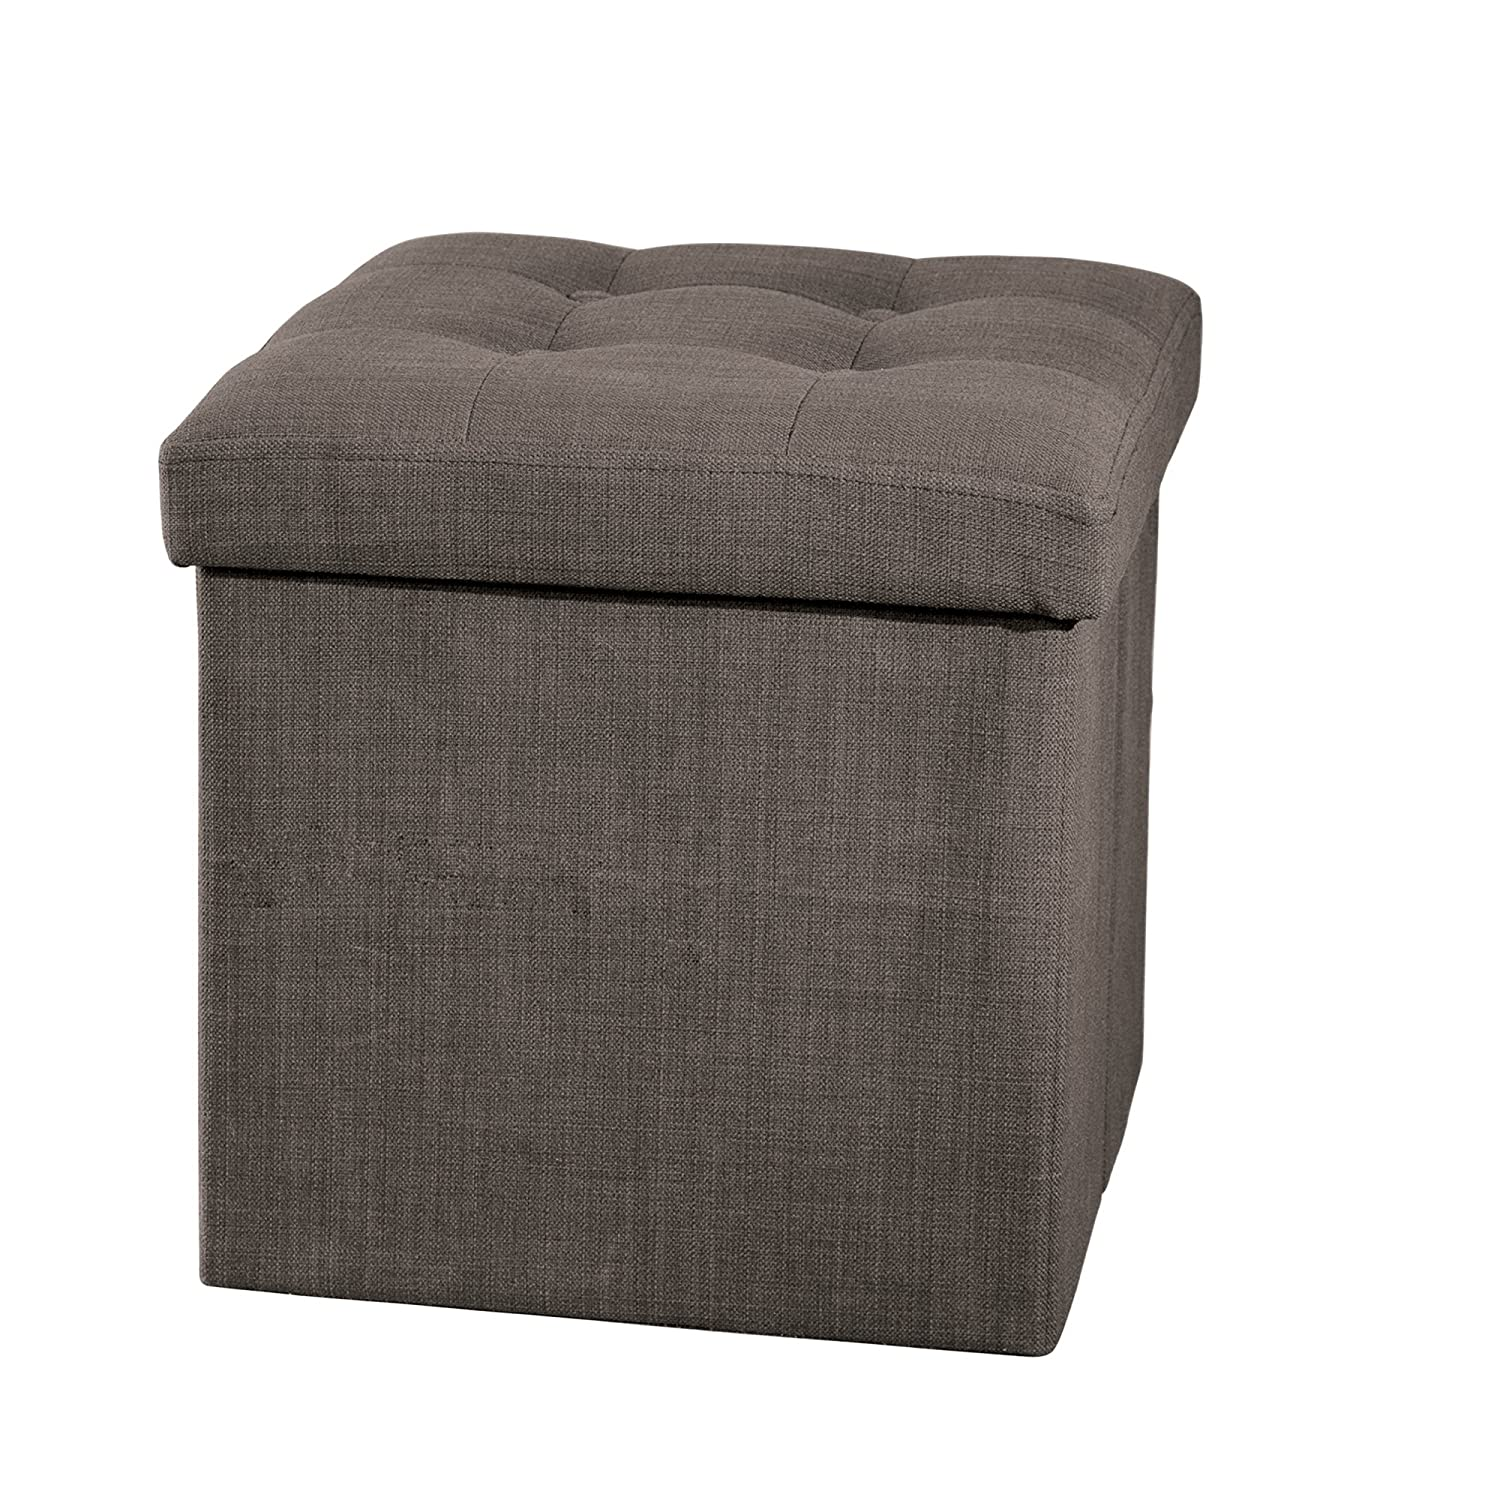 pouf coffre maison du monde top puf reposapis de algodn crudo chteau maisons du monde with pouf. Black Bedroom Furniture Sets. Home Design Ideas